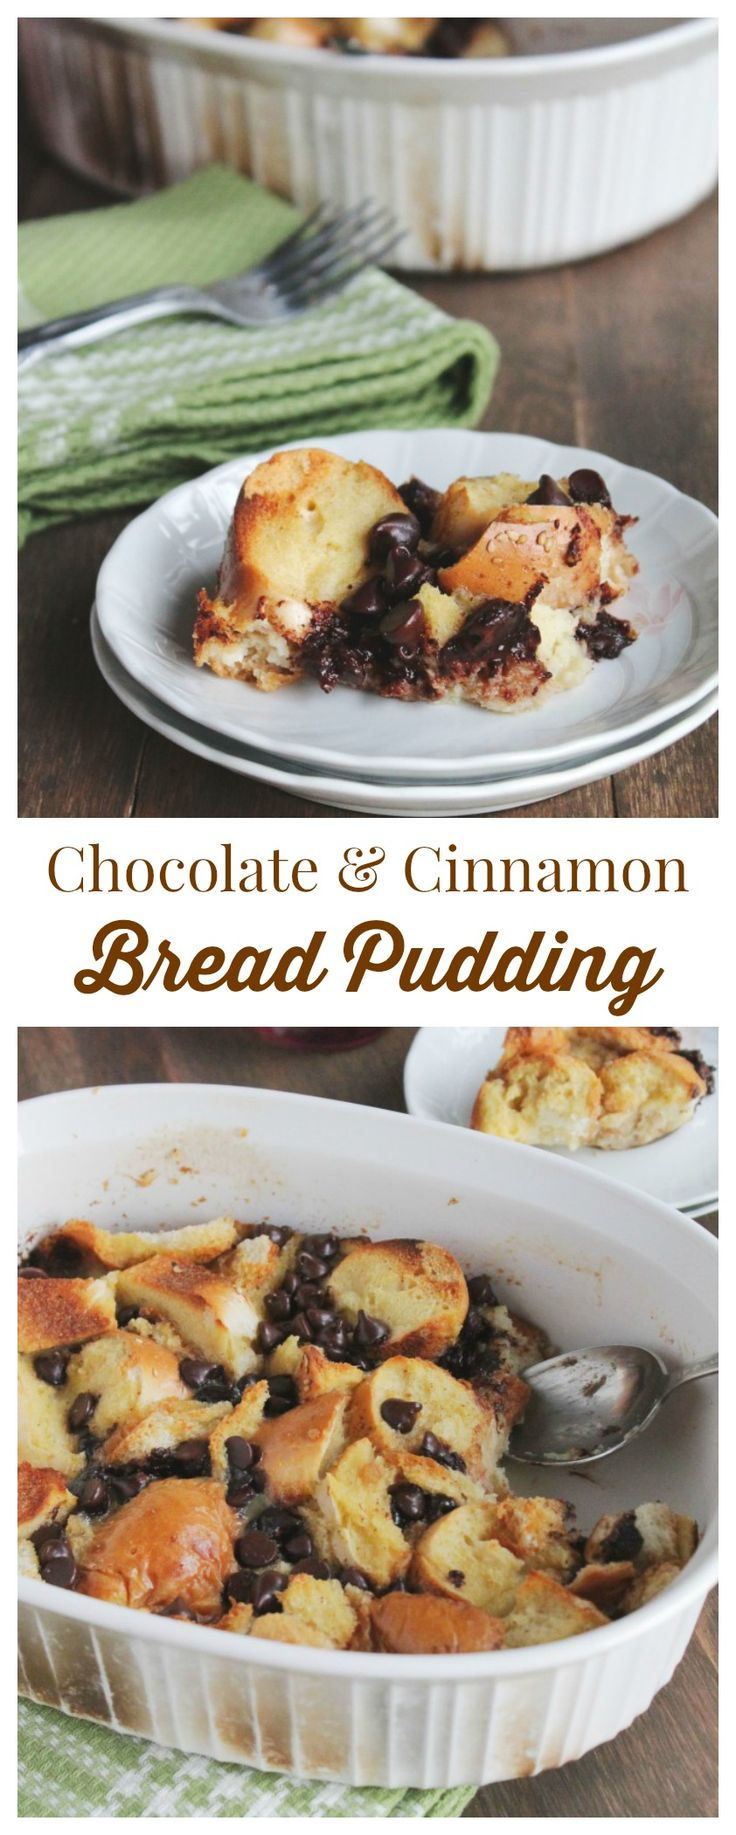 Chocolate Cinnamon Bread Pudding | My family loves this decadent bread ...